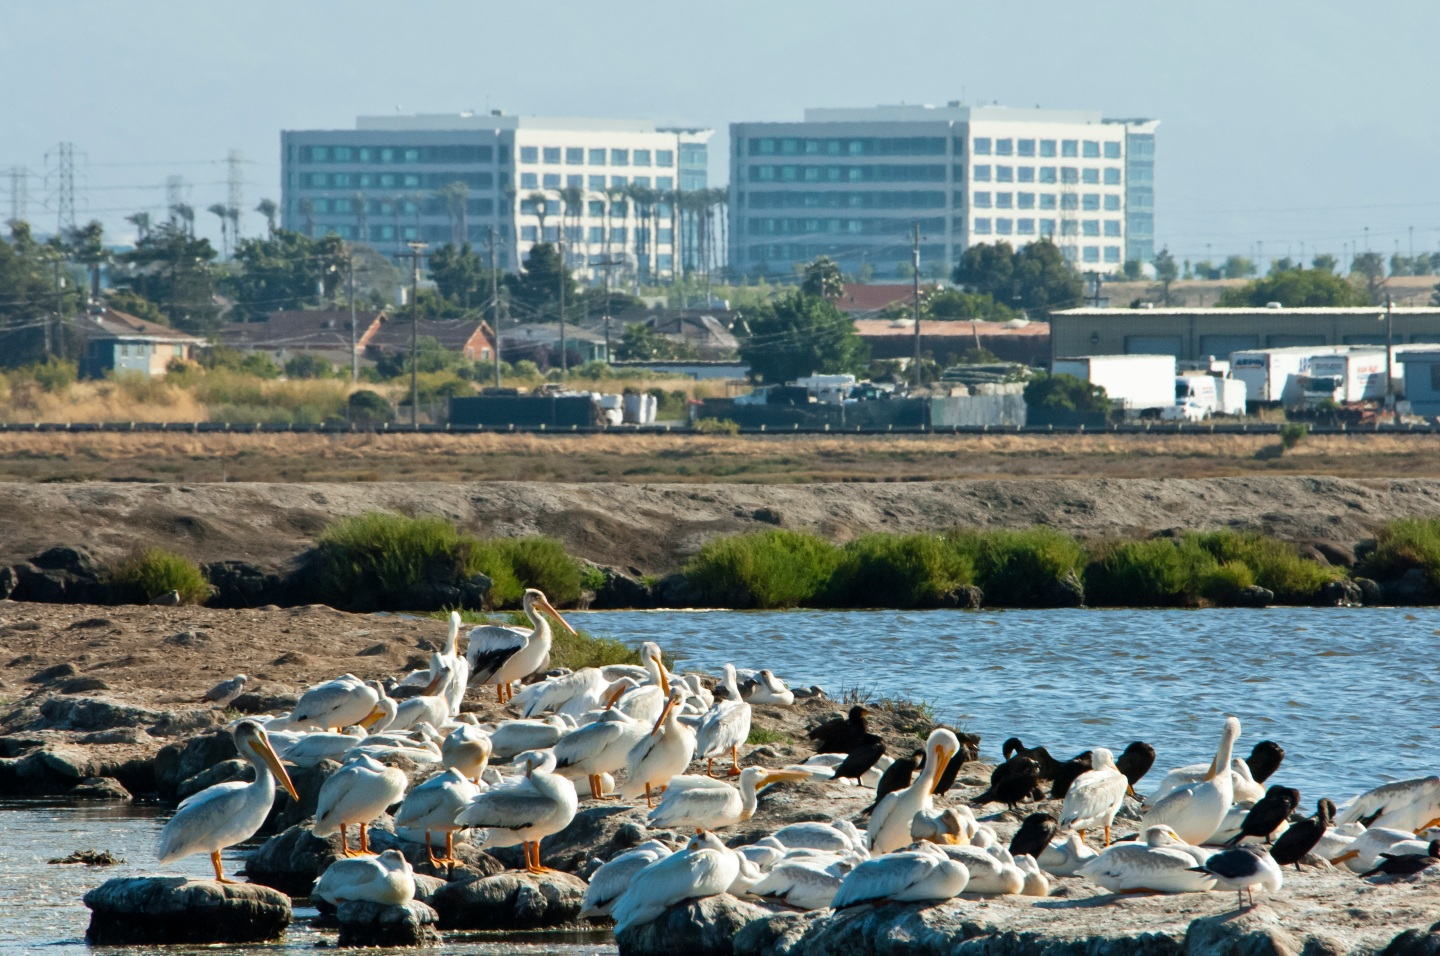 white pelicans and cormorants on island near Environmental Ed Center